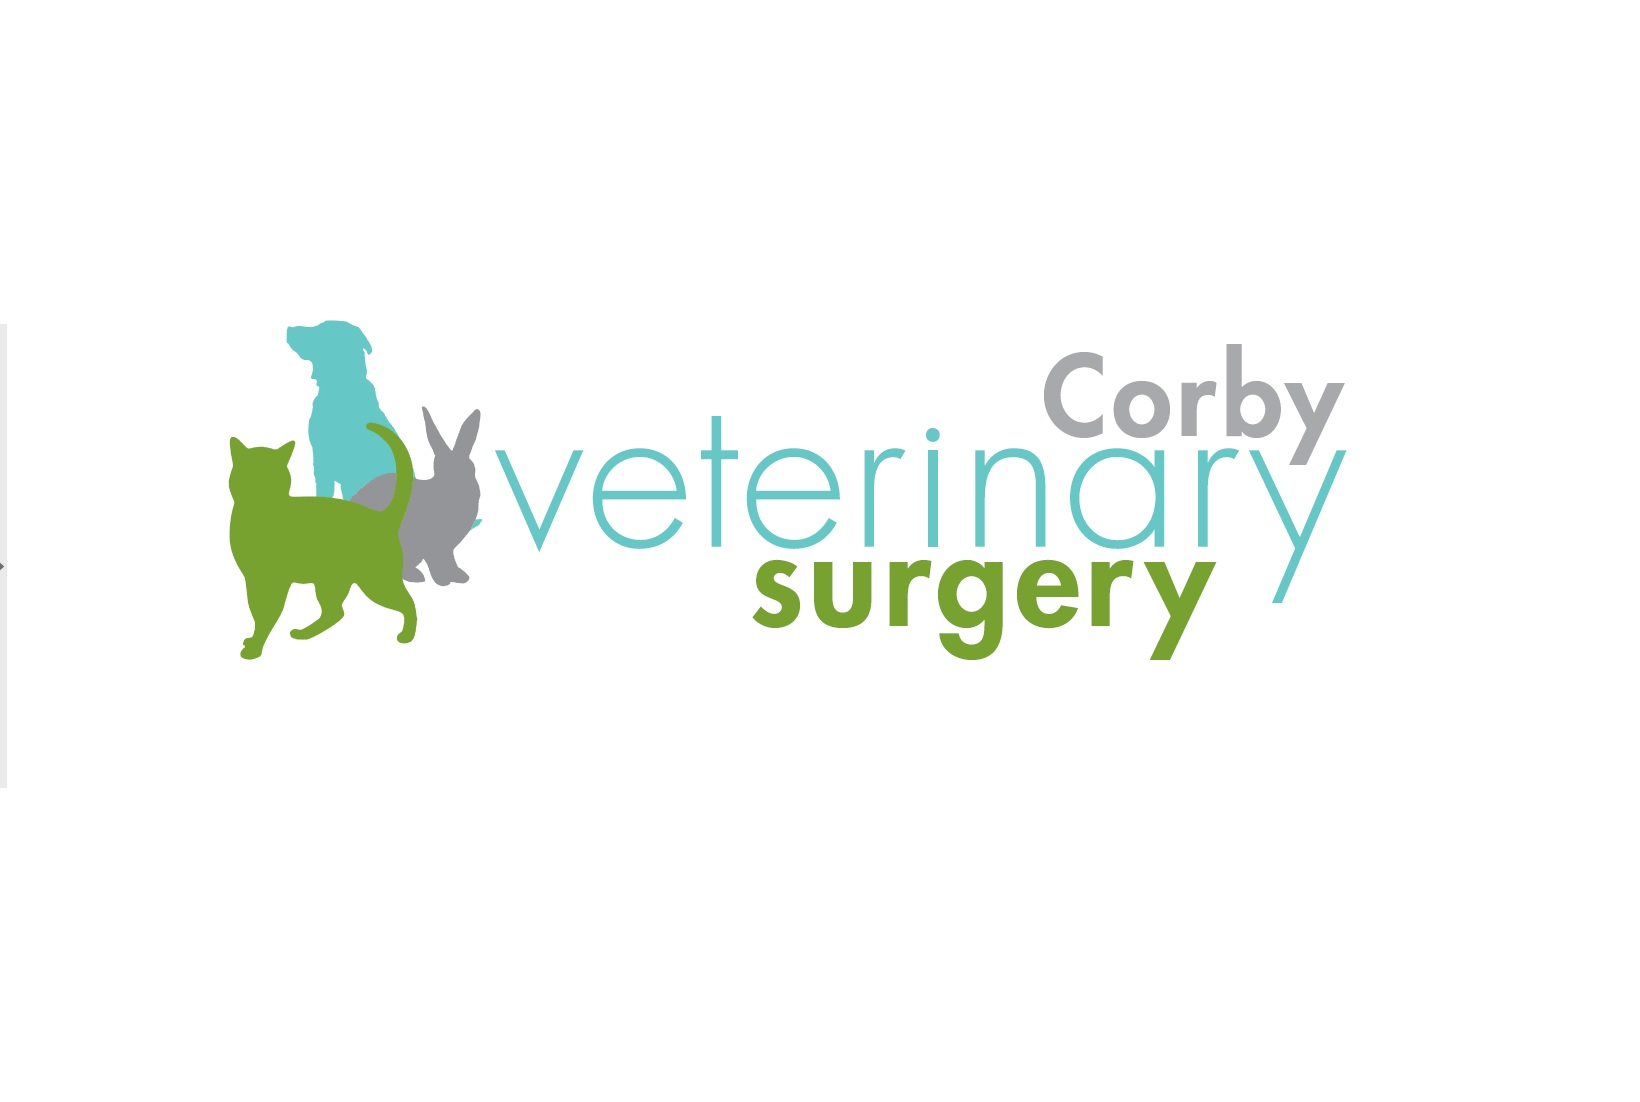 Clinical Director – Corby Veterinary Surgery